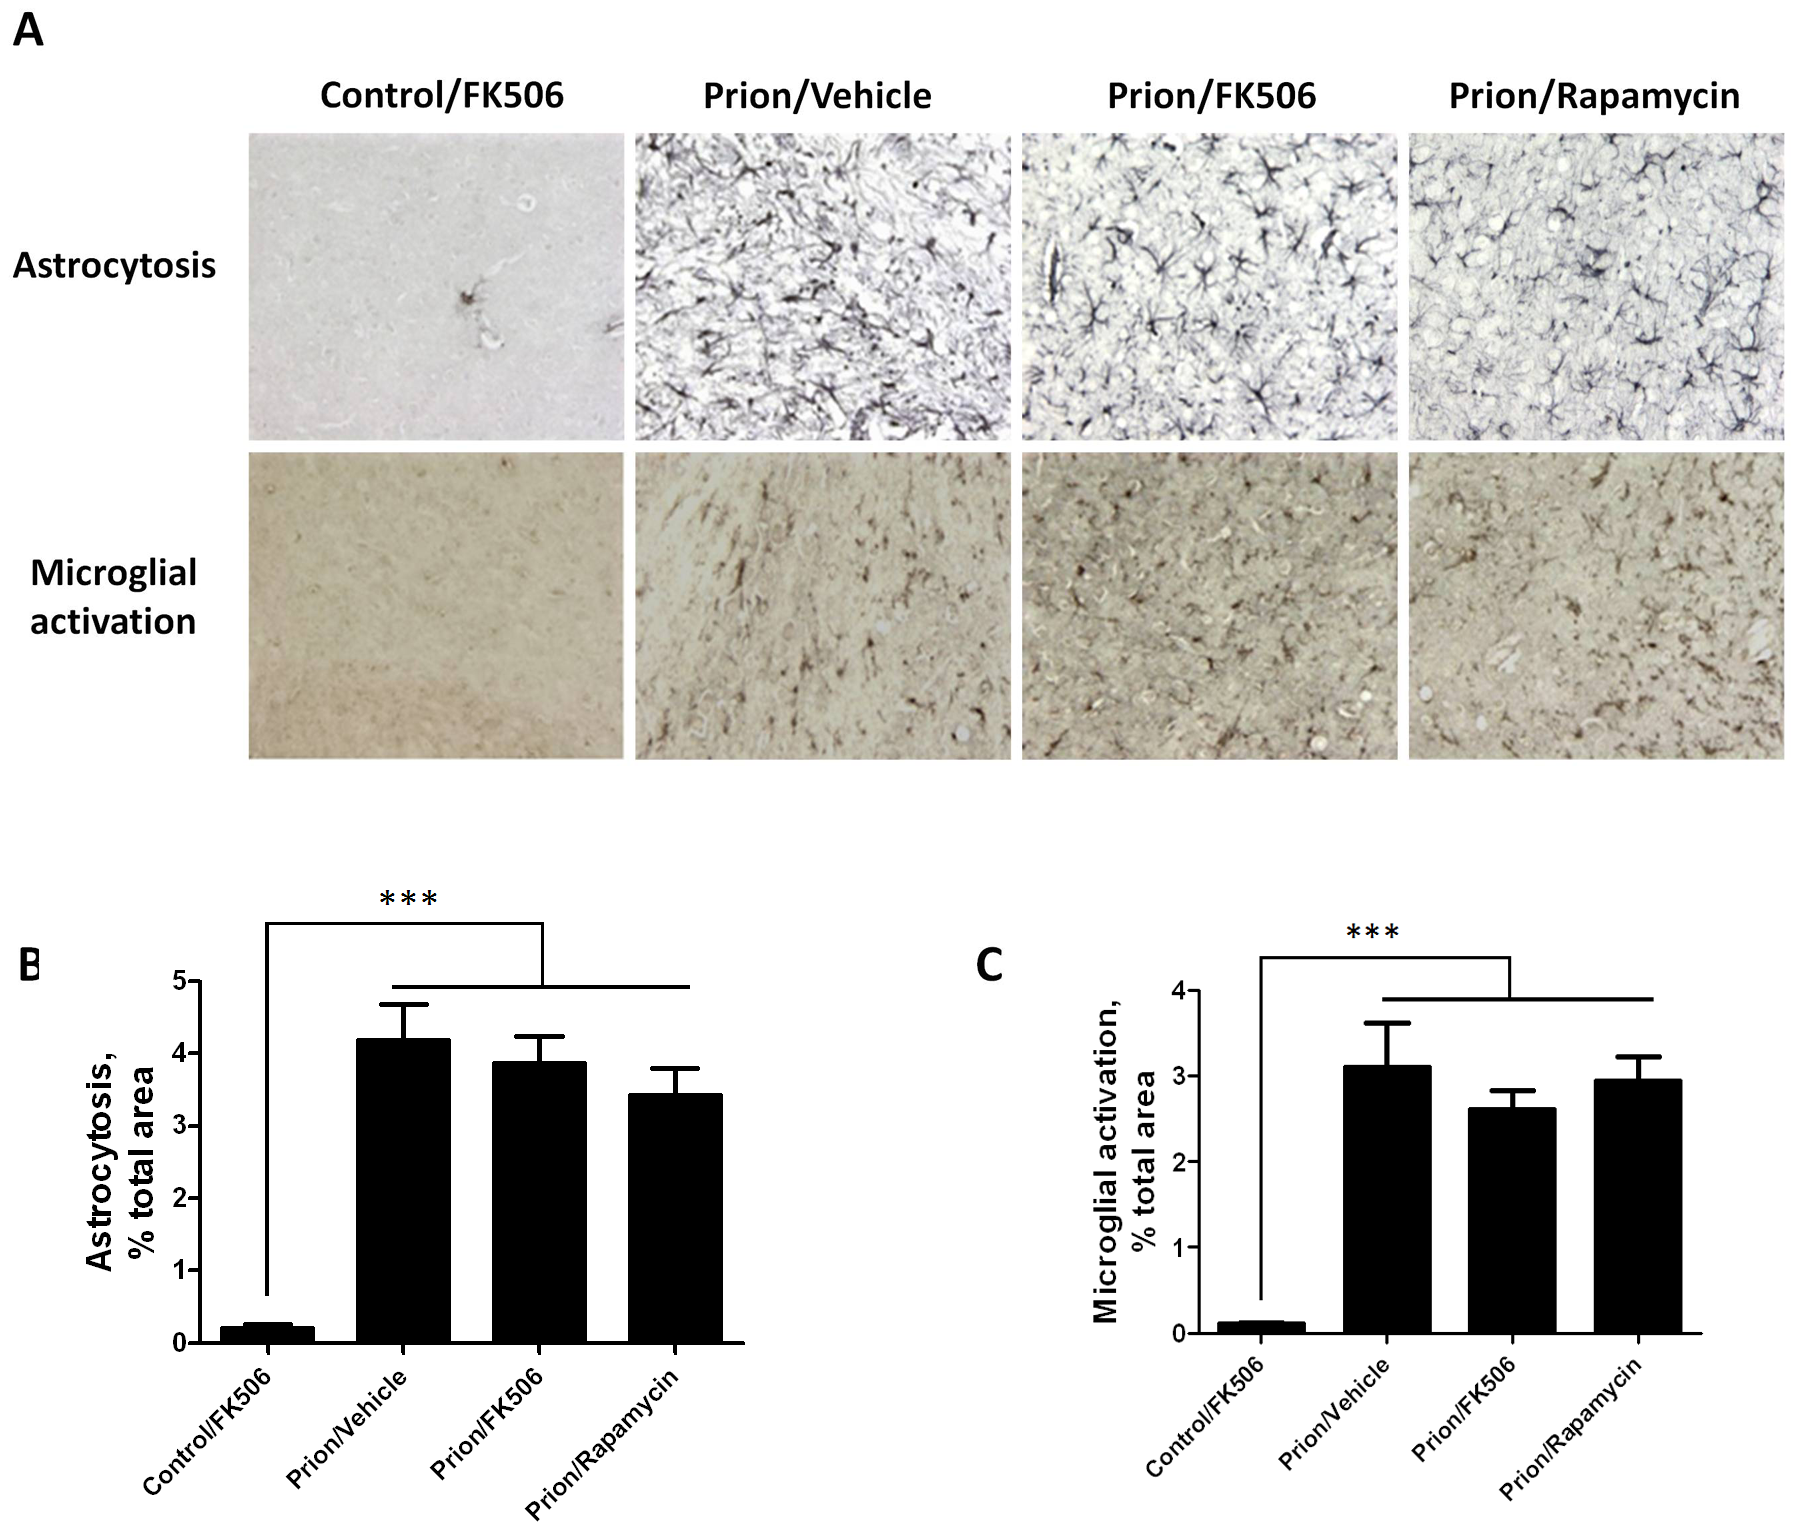 Treatment with FK506 does not alter the extent of astrocytosis or microglial activation.